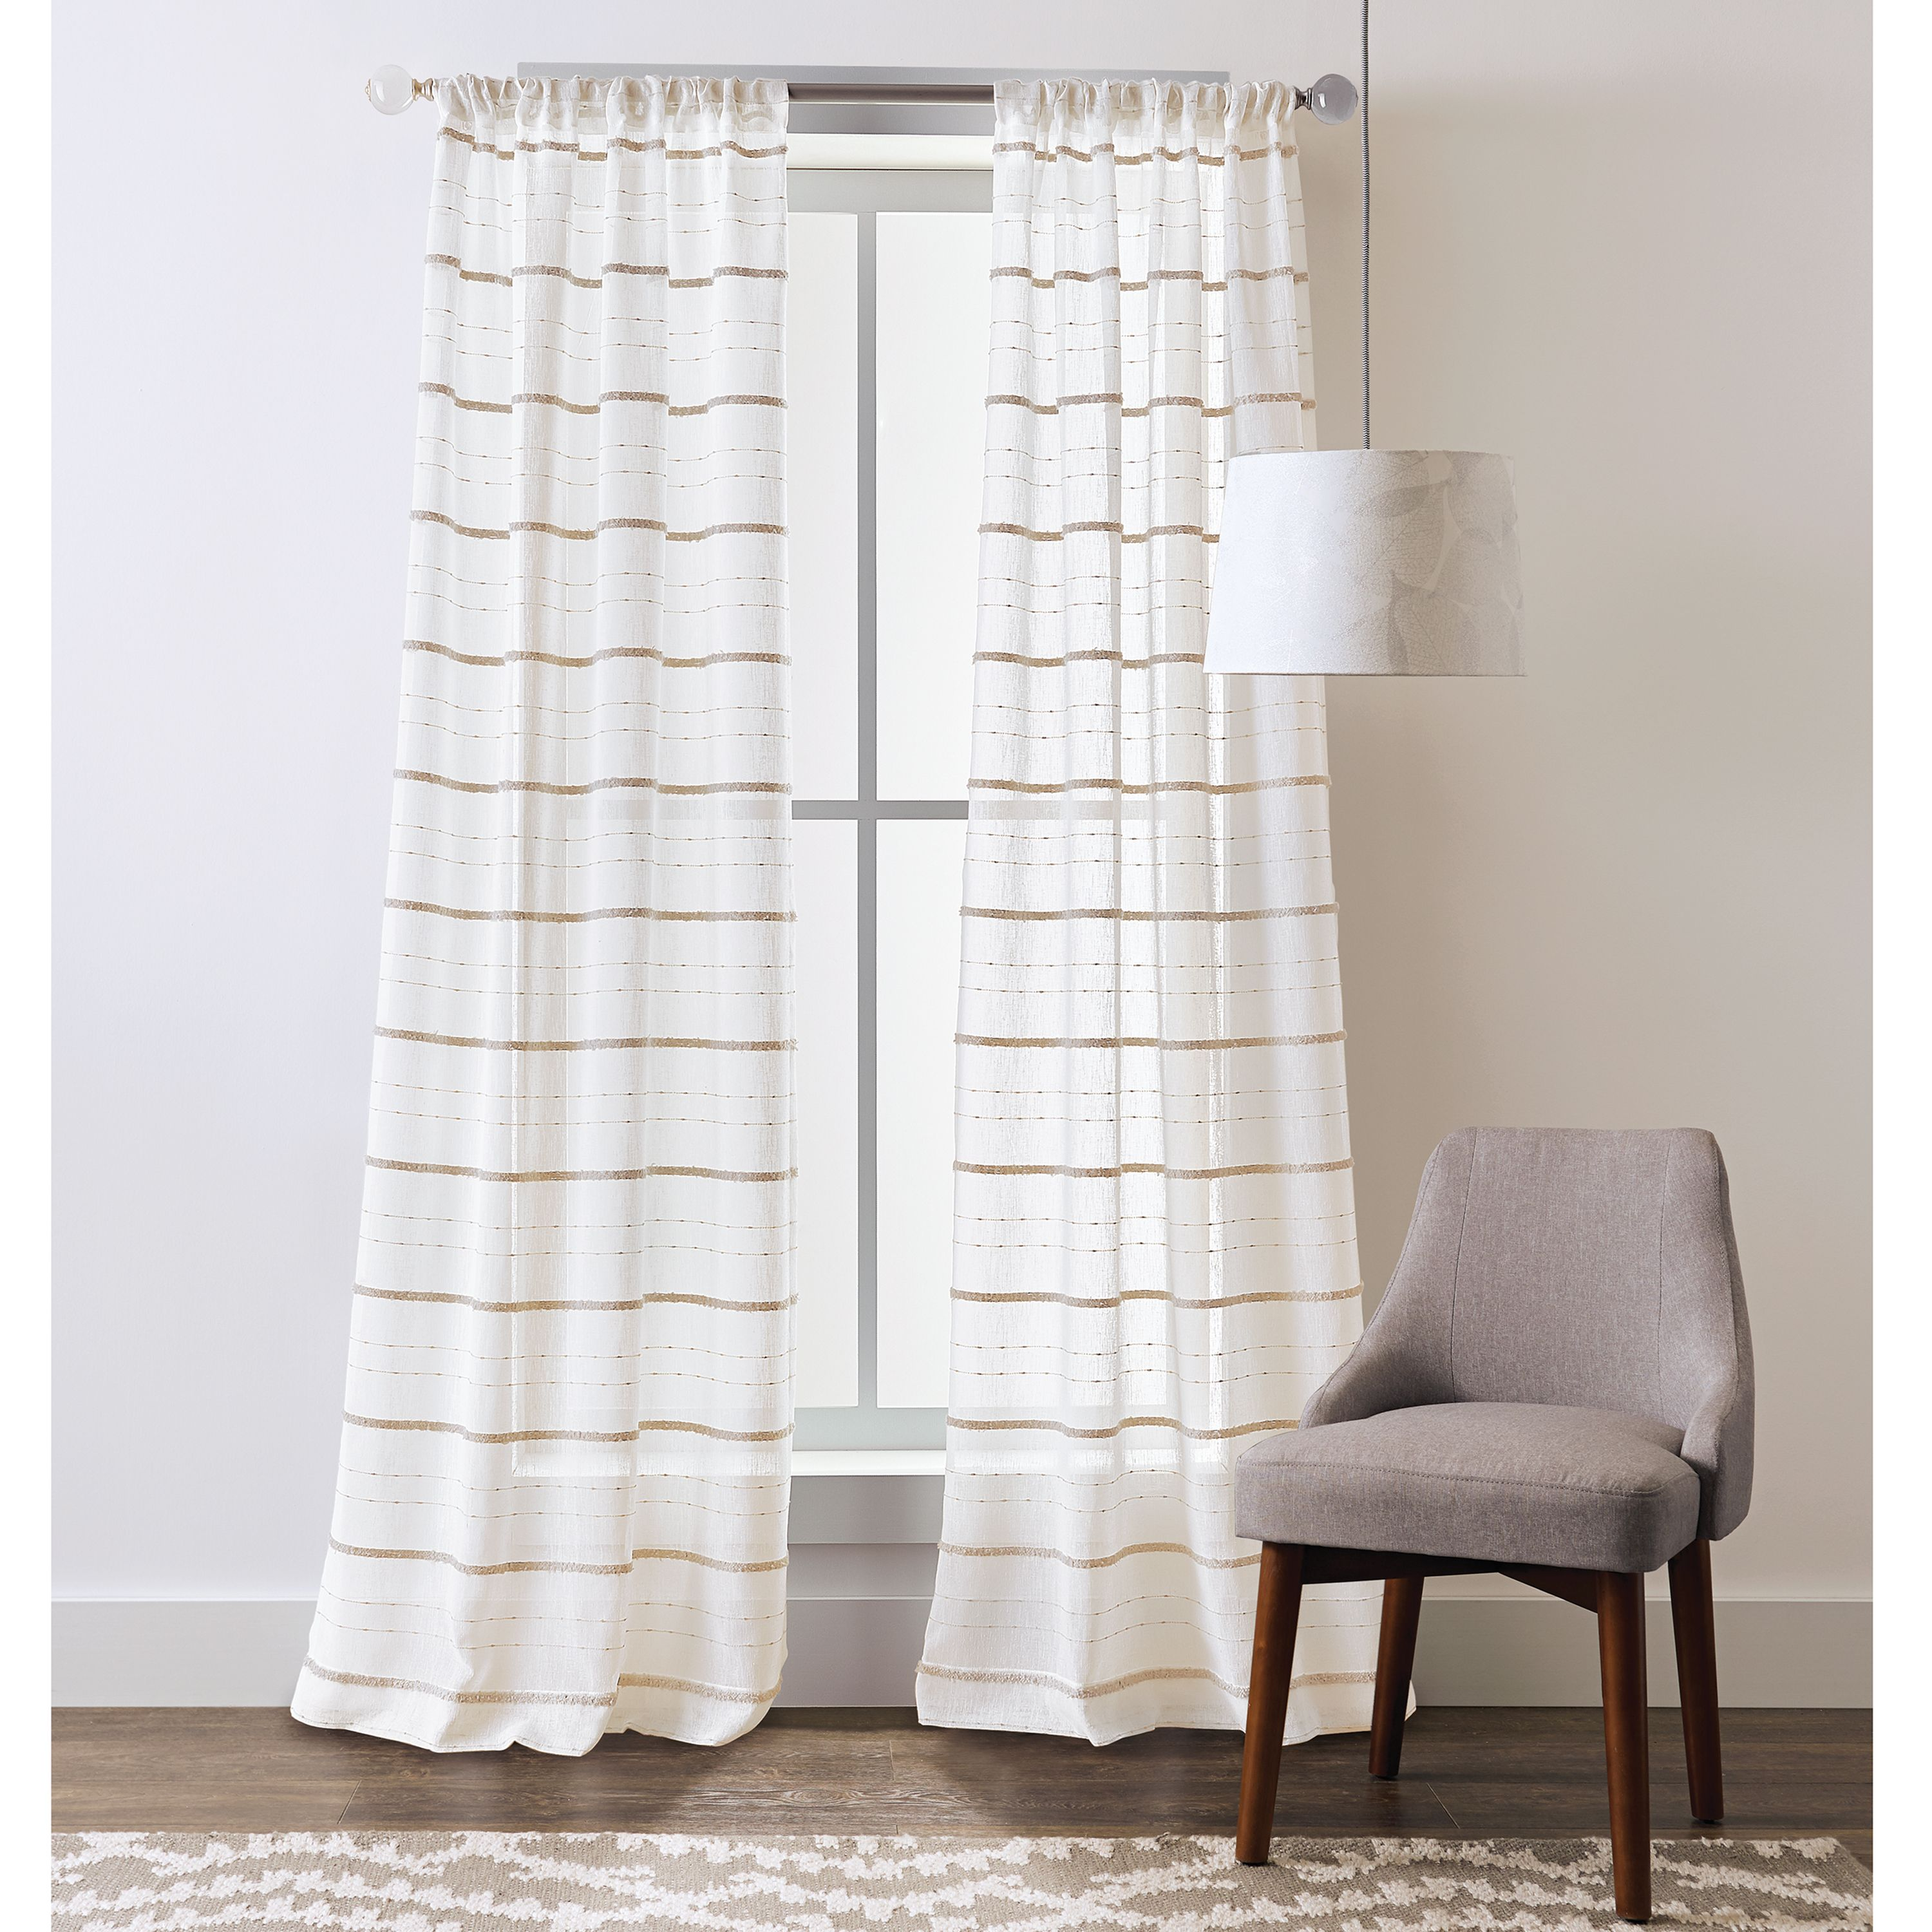 Better Homes And Gardens Woven Stripe Pole Top Curtain Panel Set Of 2 Walmart Com Better Homes And Gardens Panel Curtains Home And Garden